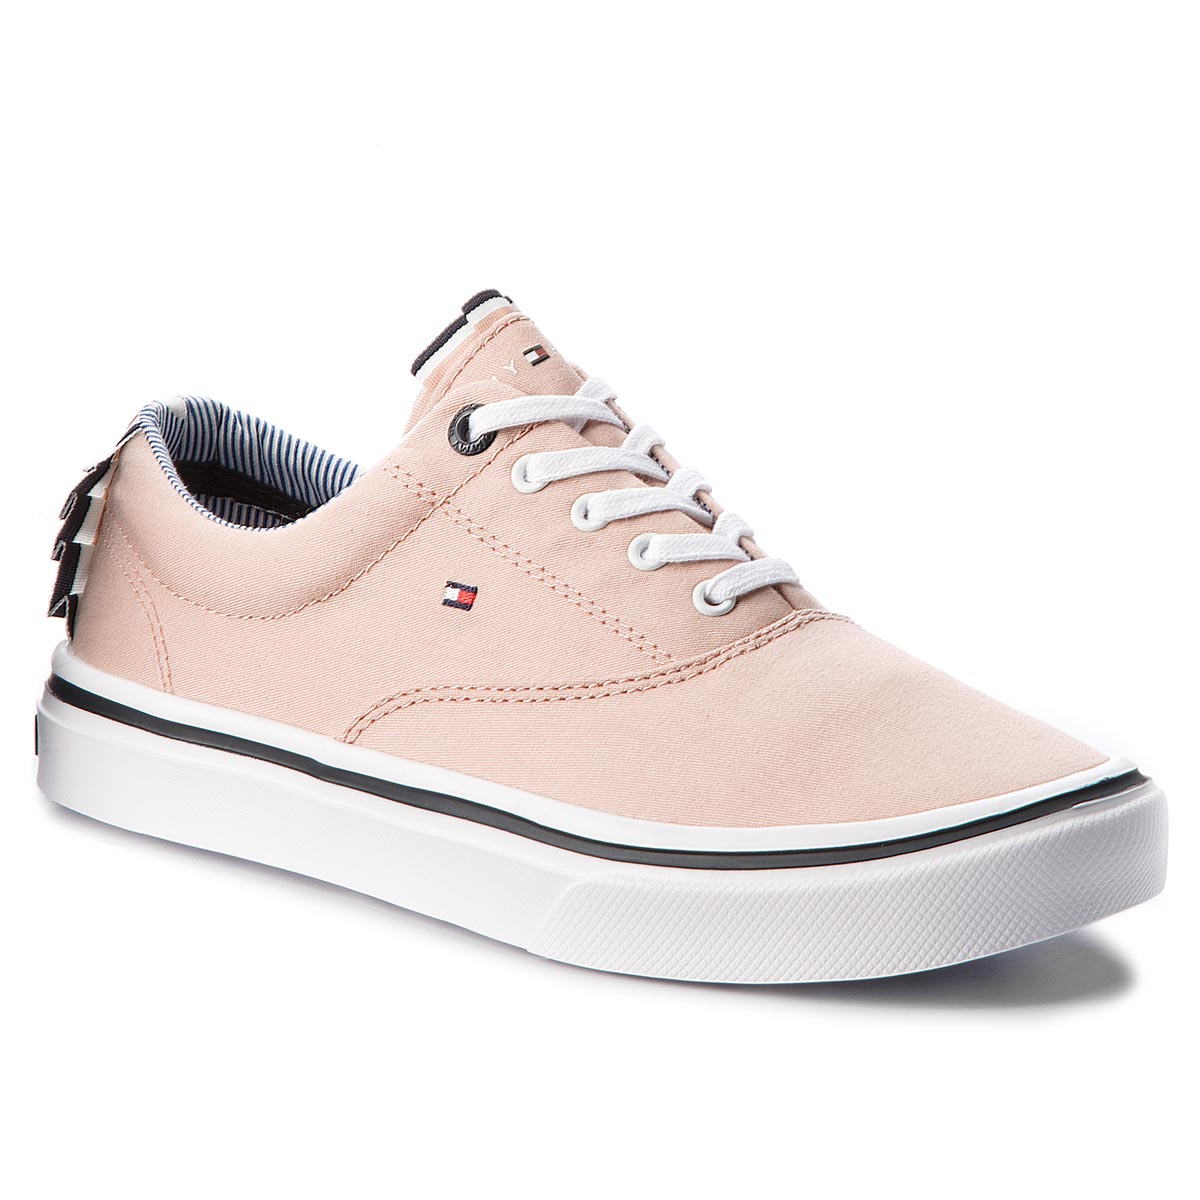 Tenisky TOMMY HILFIGER - Textile Light Weight Sneaker FW0FW02809 Dusty Rose 502